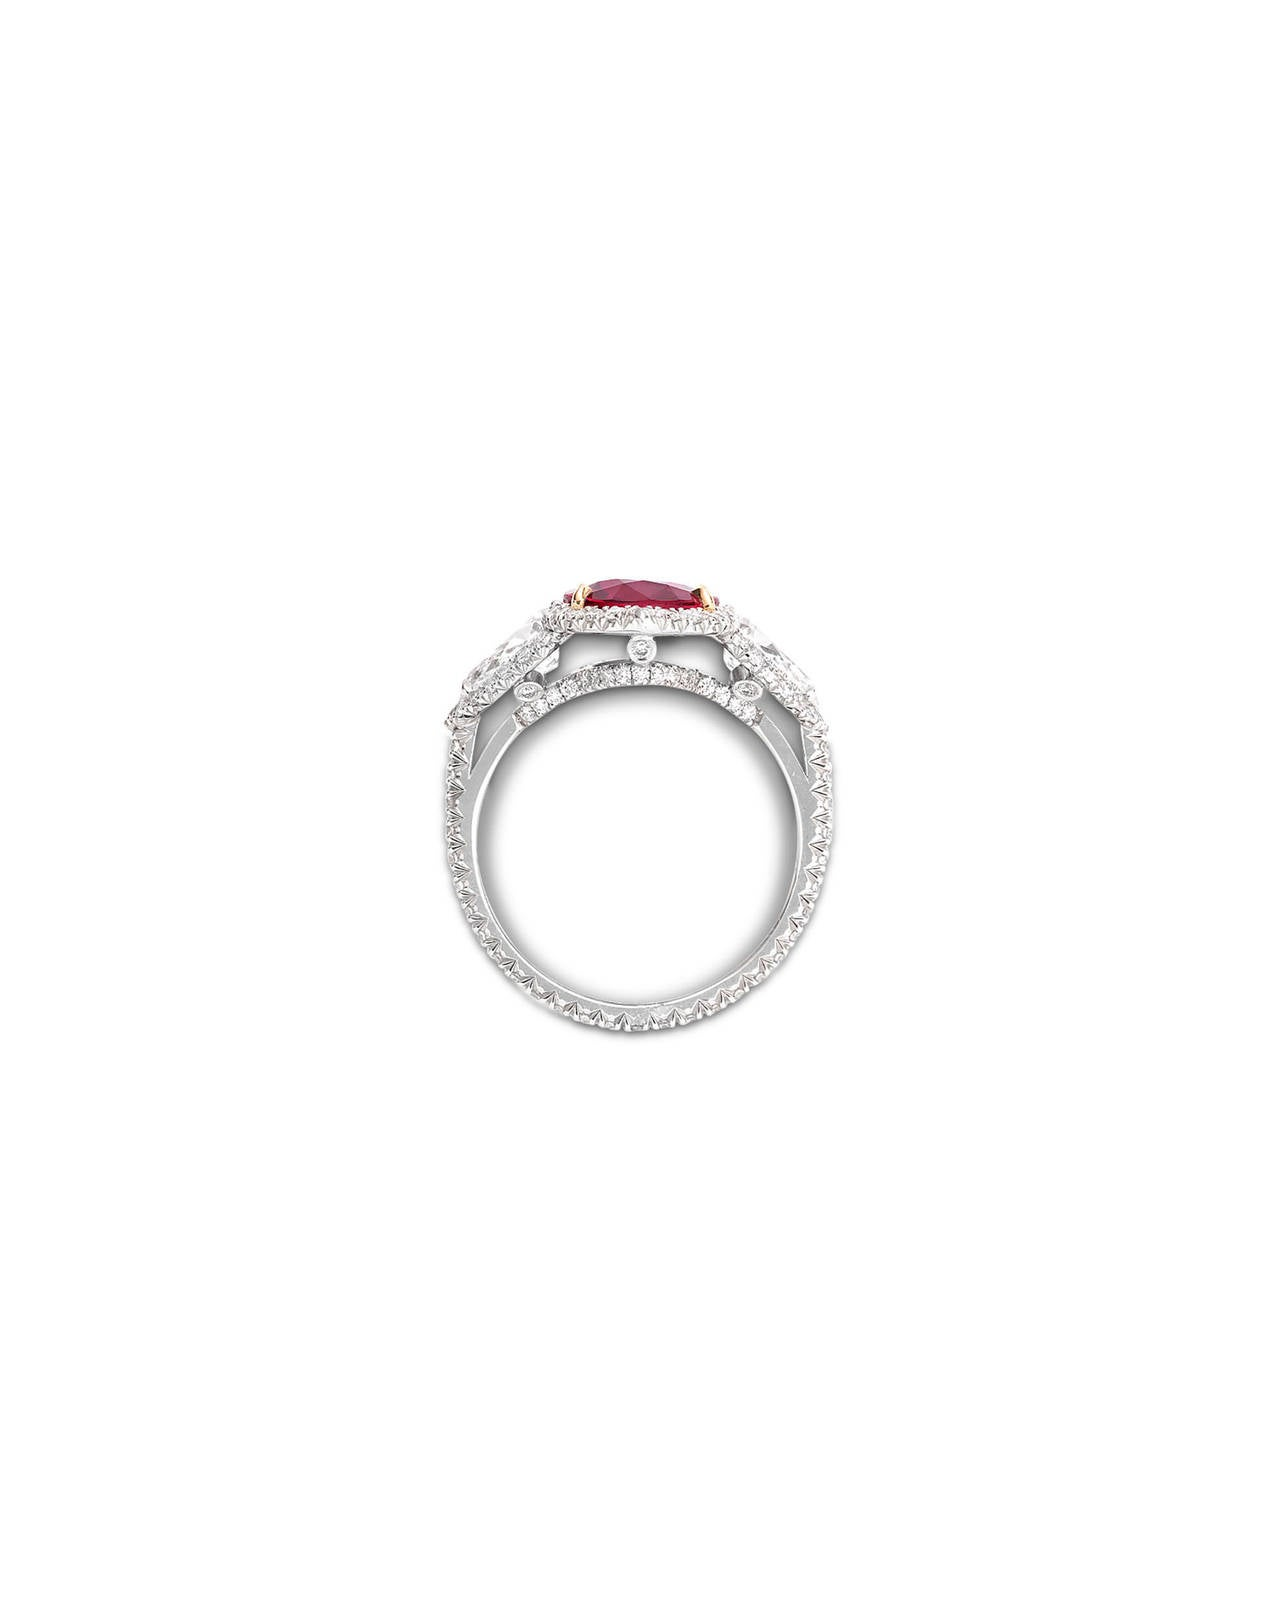 Untreated Ruby and Diamond Ring 3.02 Carats 3